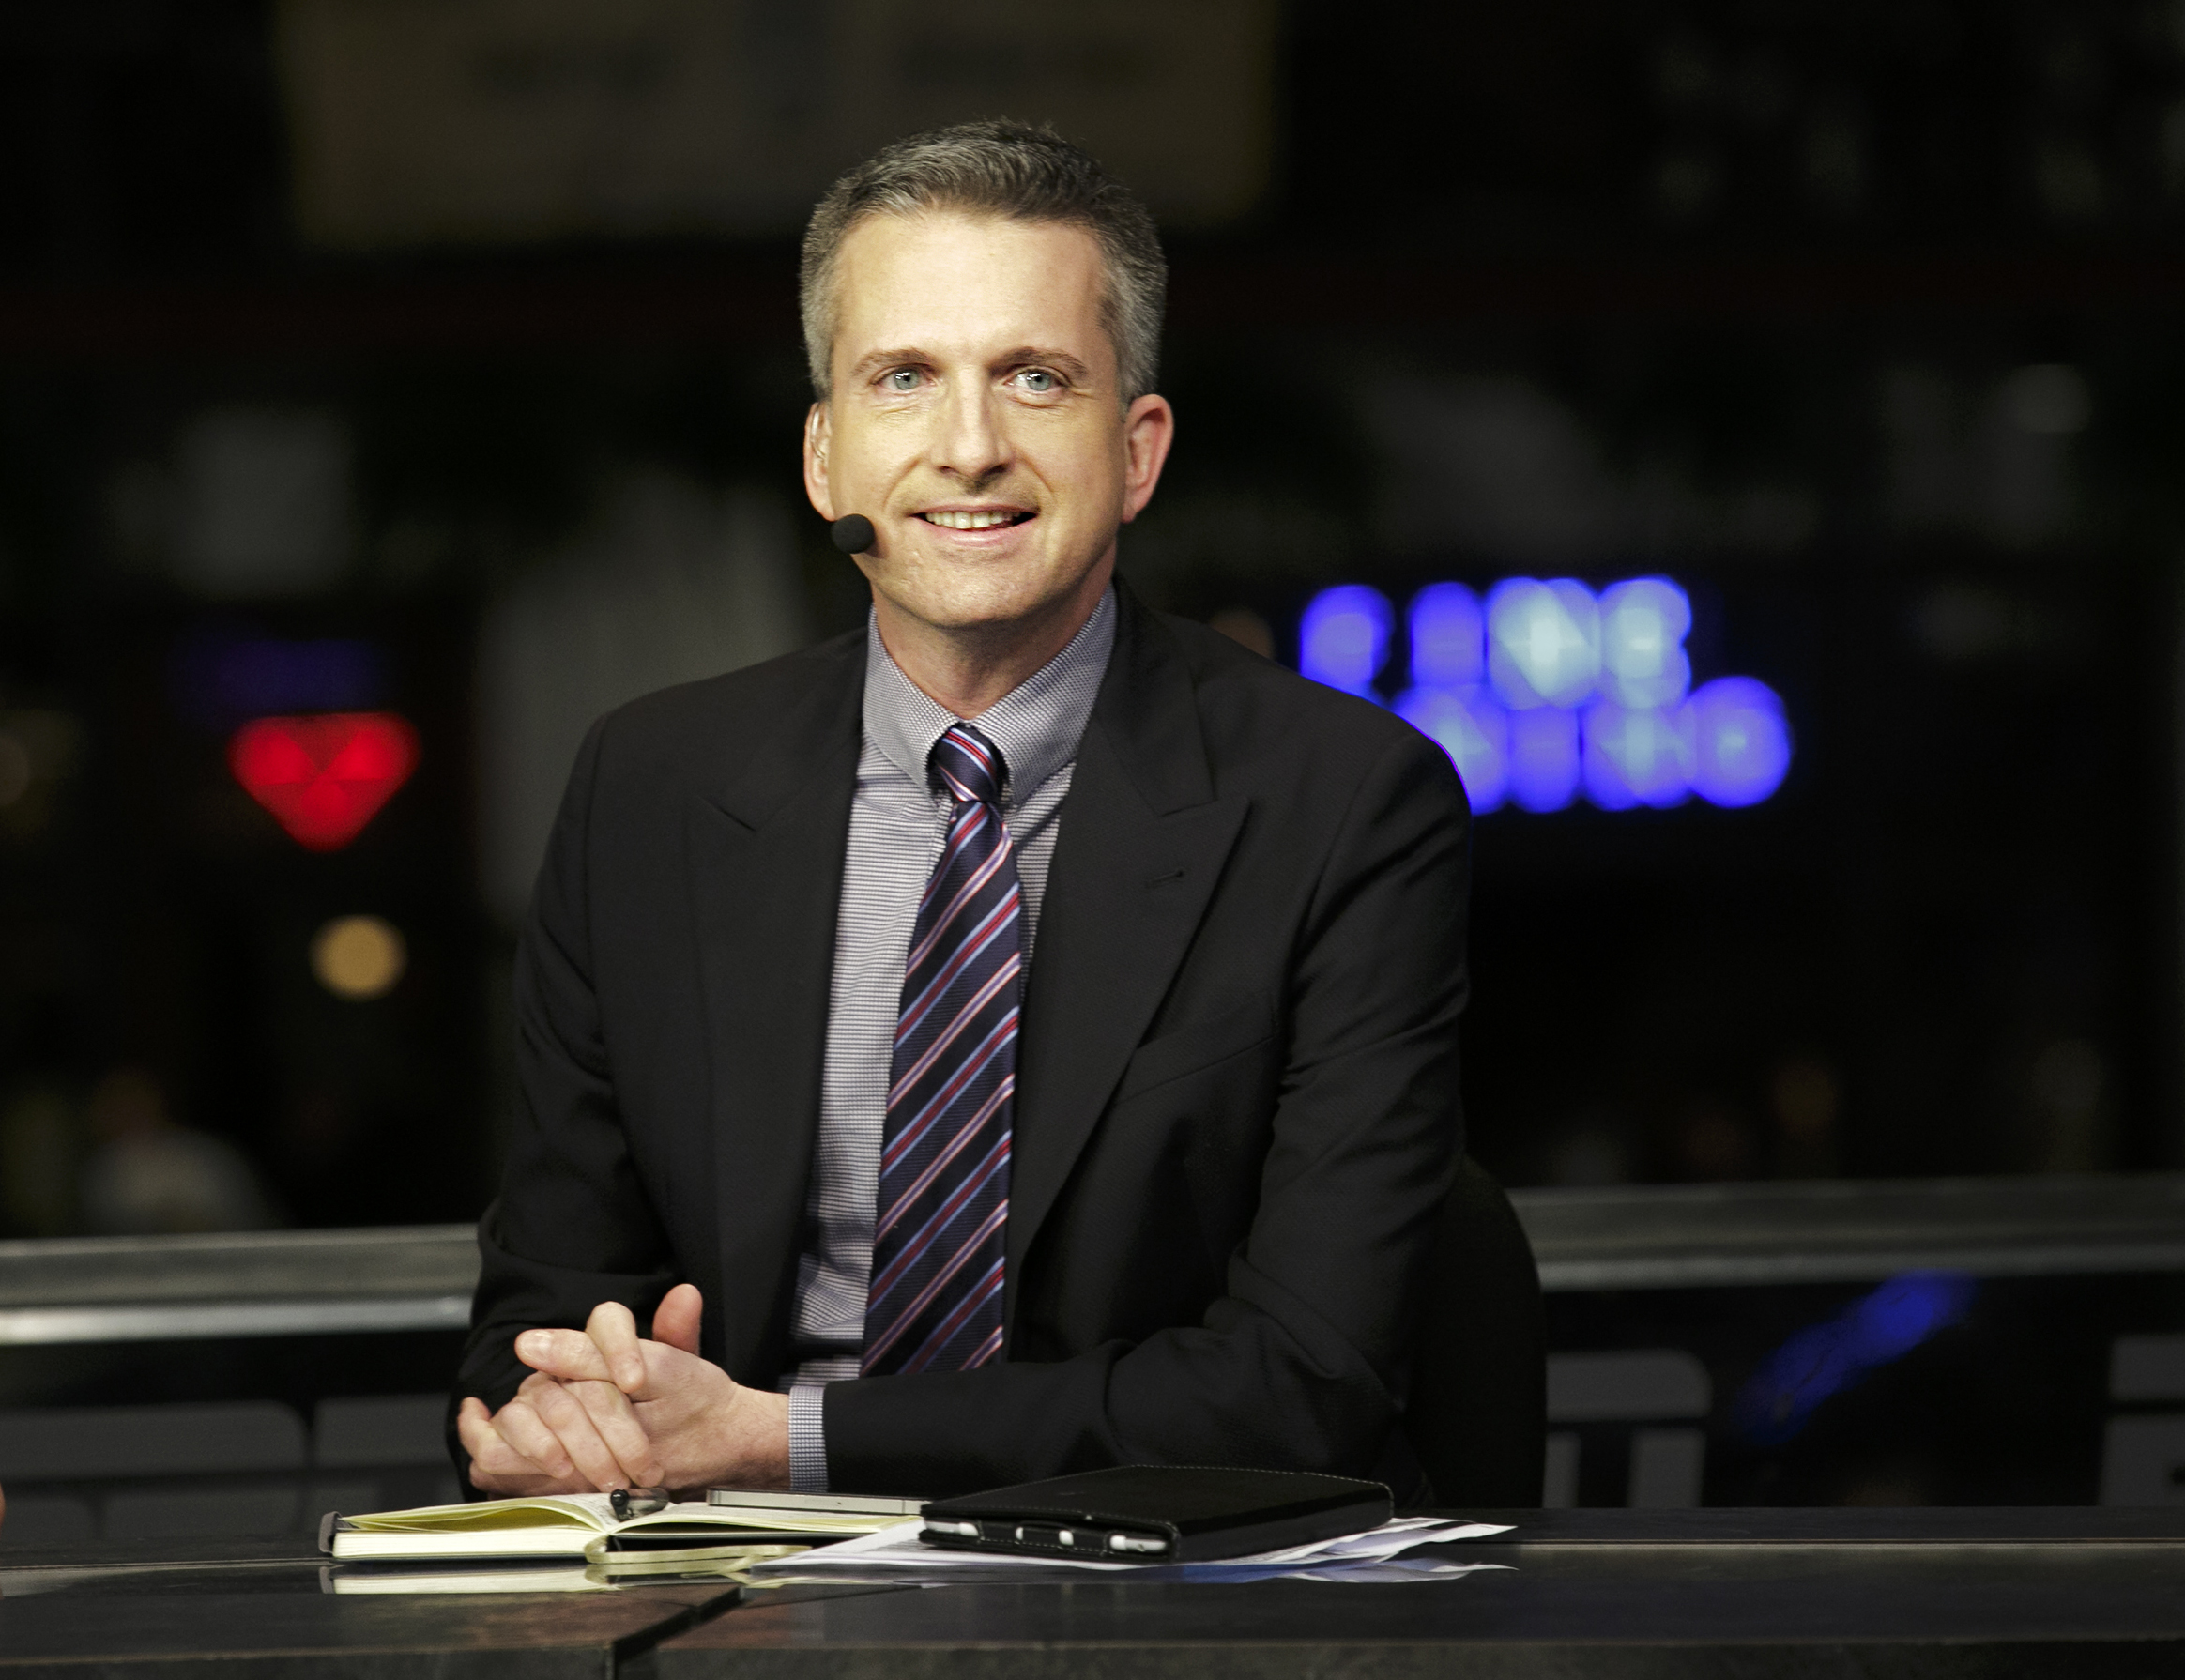 Bill Simmons on the set of NBA Countdown in New Orleans on Jan. 30, 2013.